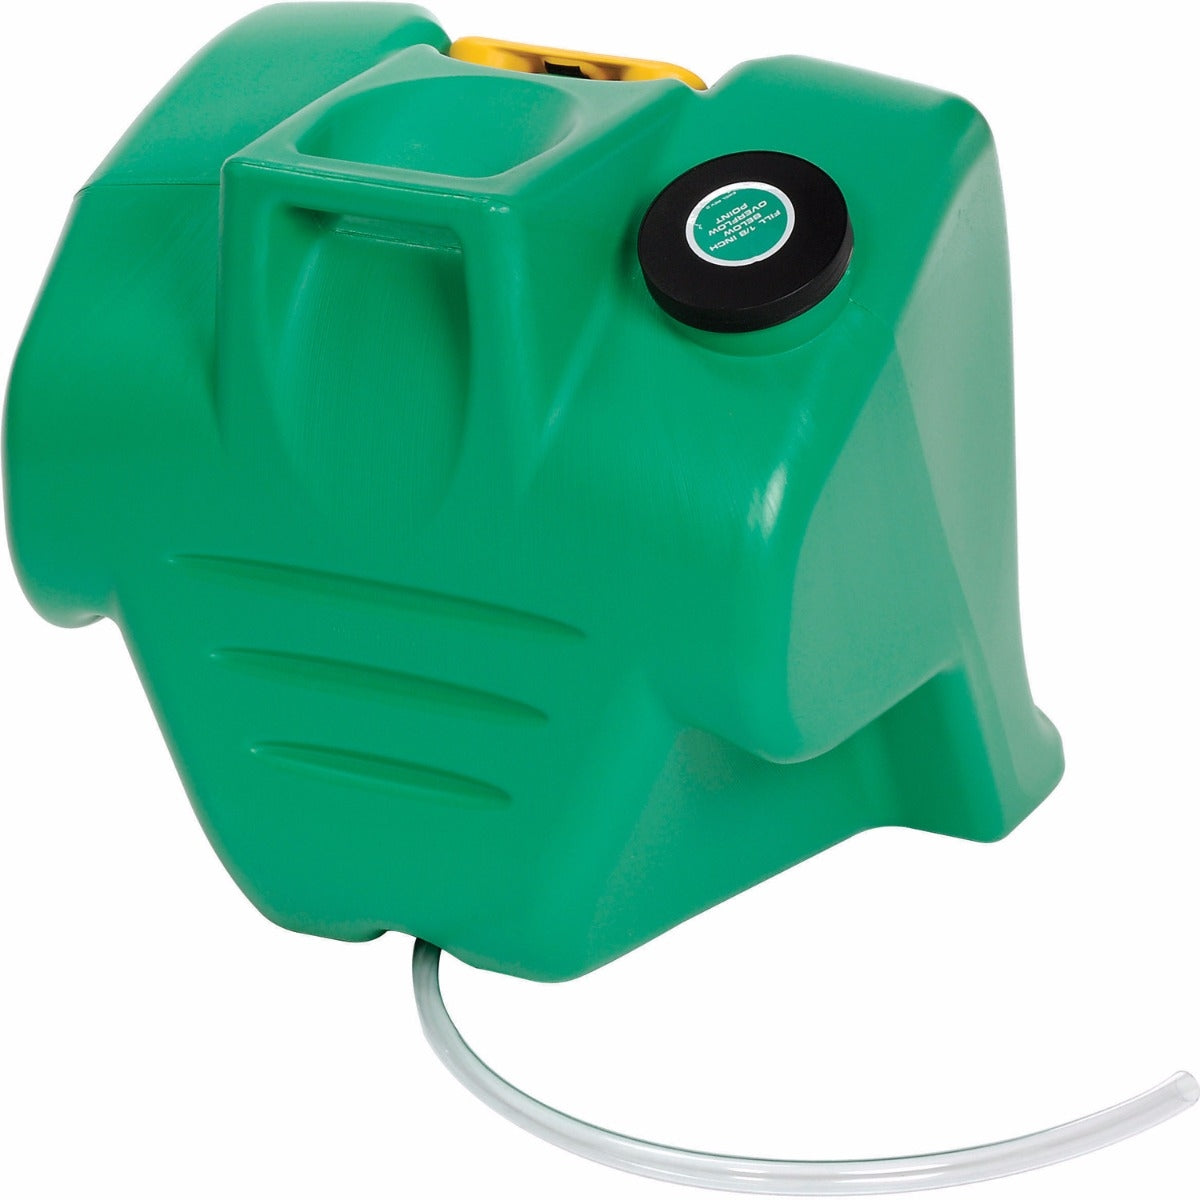 Guardian G1540 AquaGuard 16 Gallon Gravity-Flow Portable Eyewash Unit